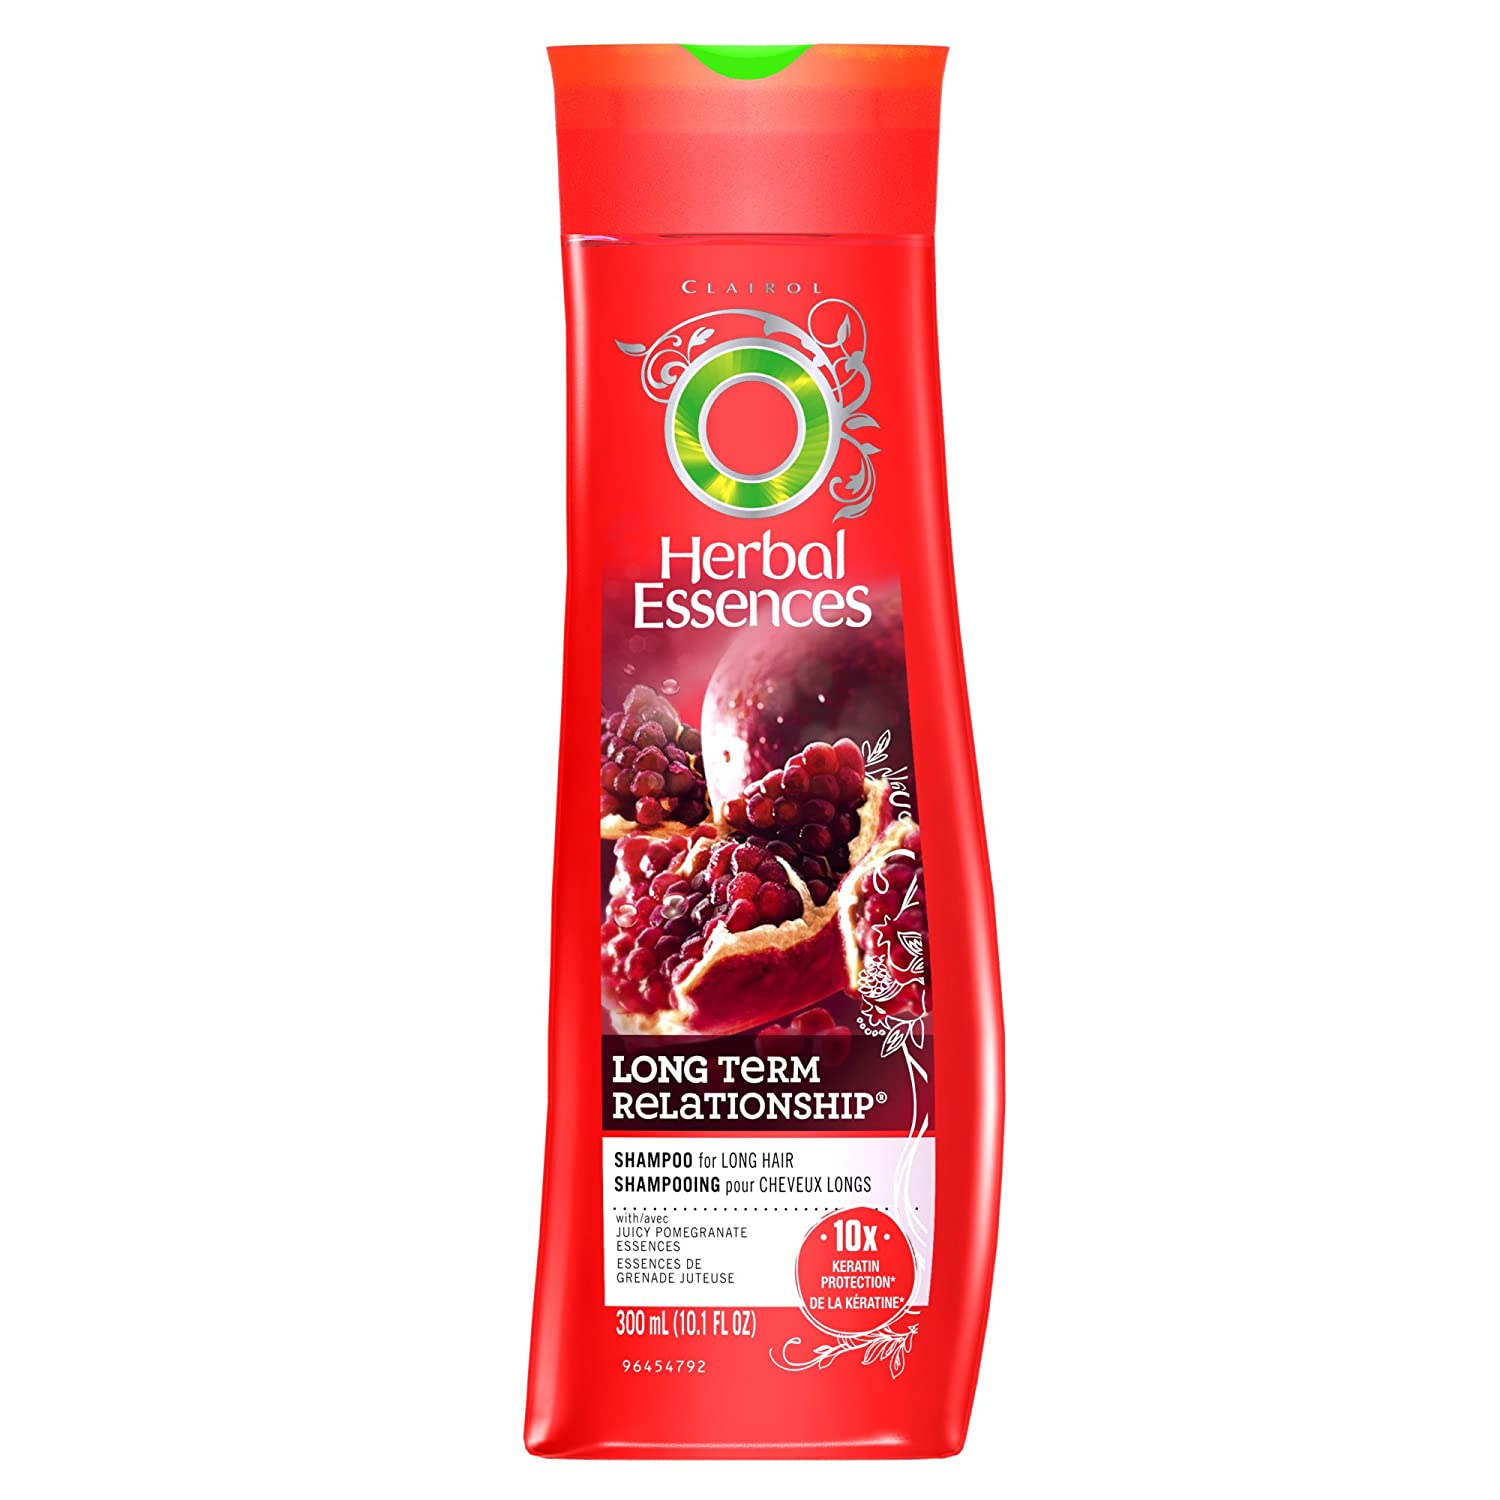 herbal essences long term relationship co wash